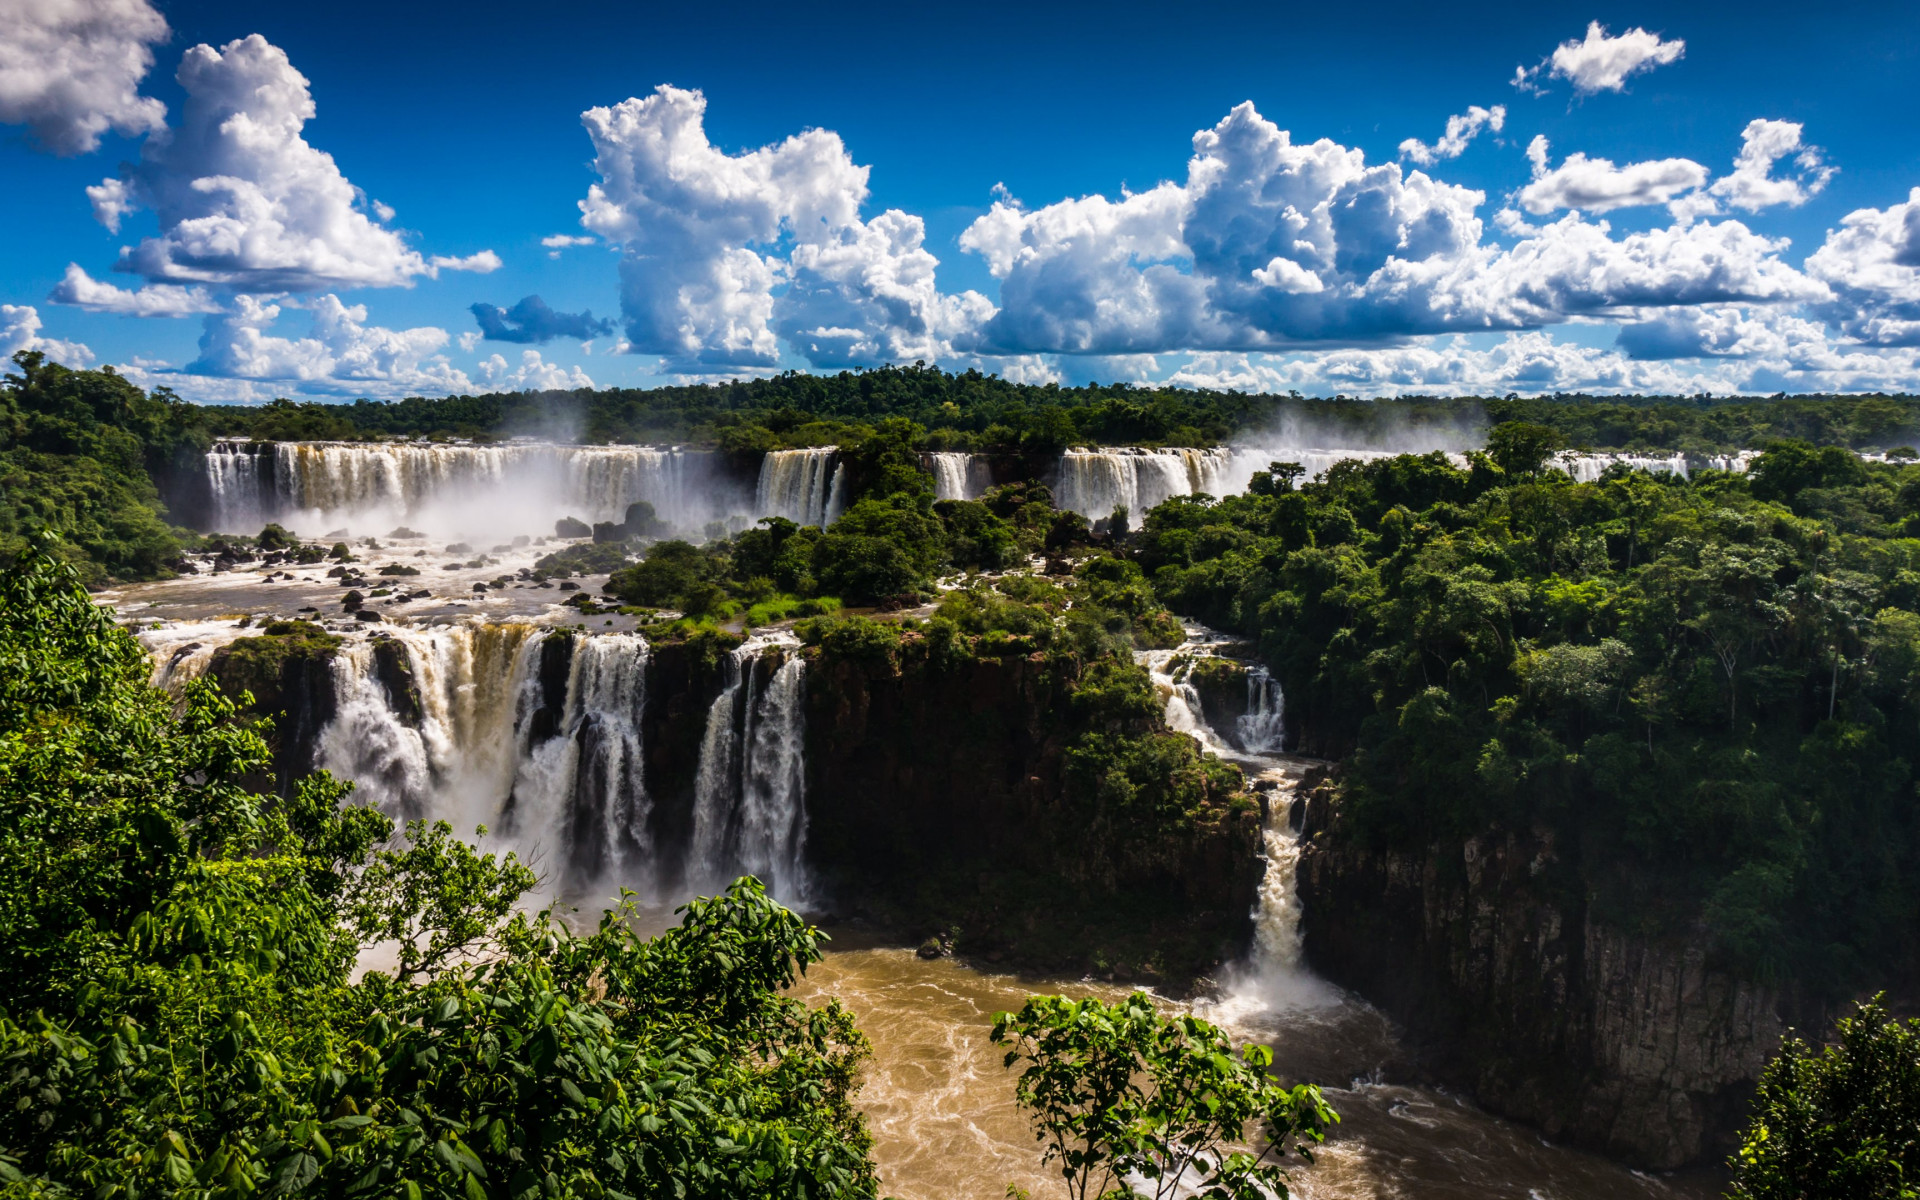 Brazilian side of Iguazu Falls | 1920x1200 wallpaper